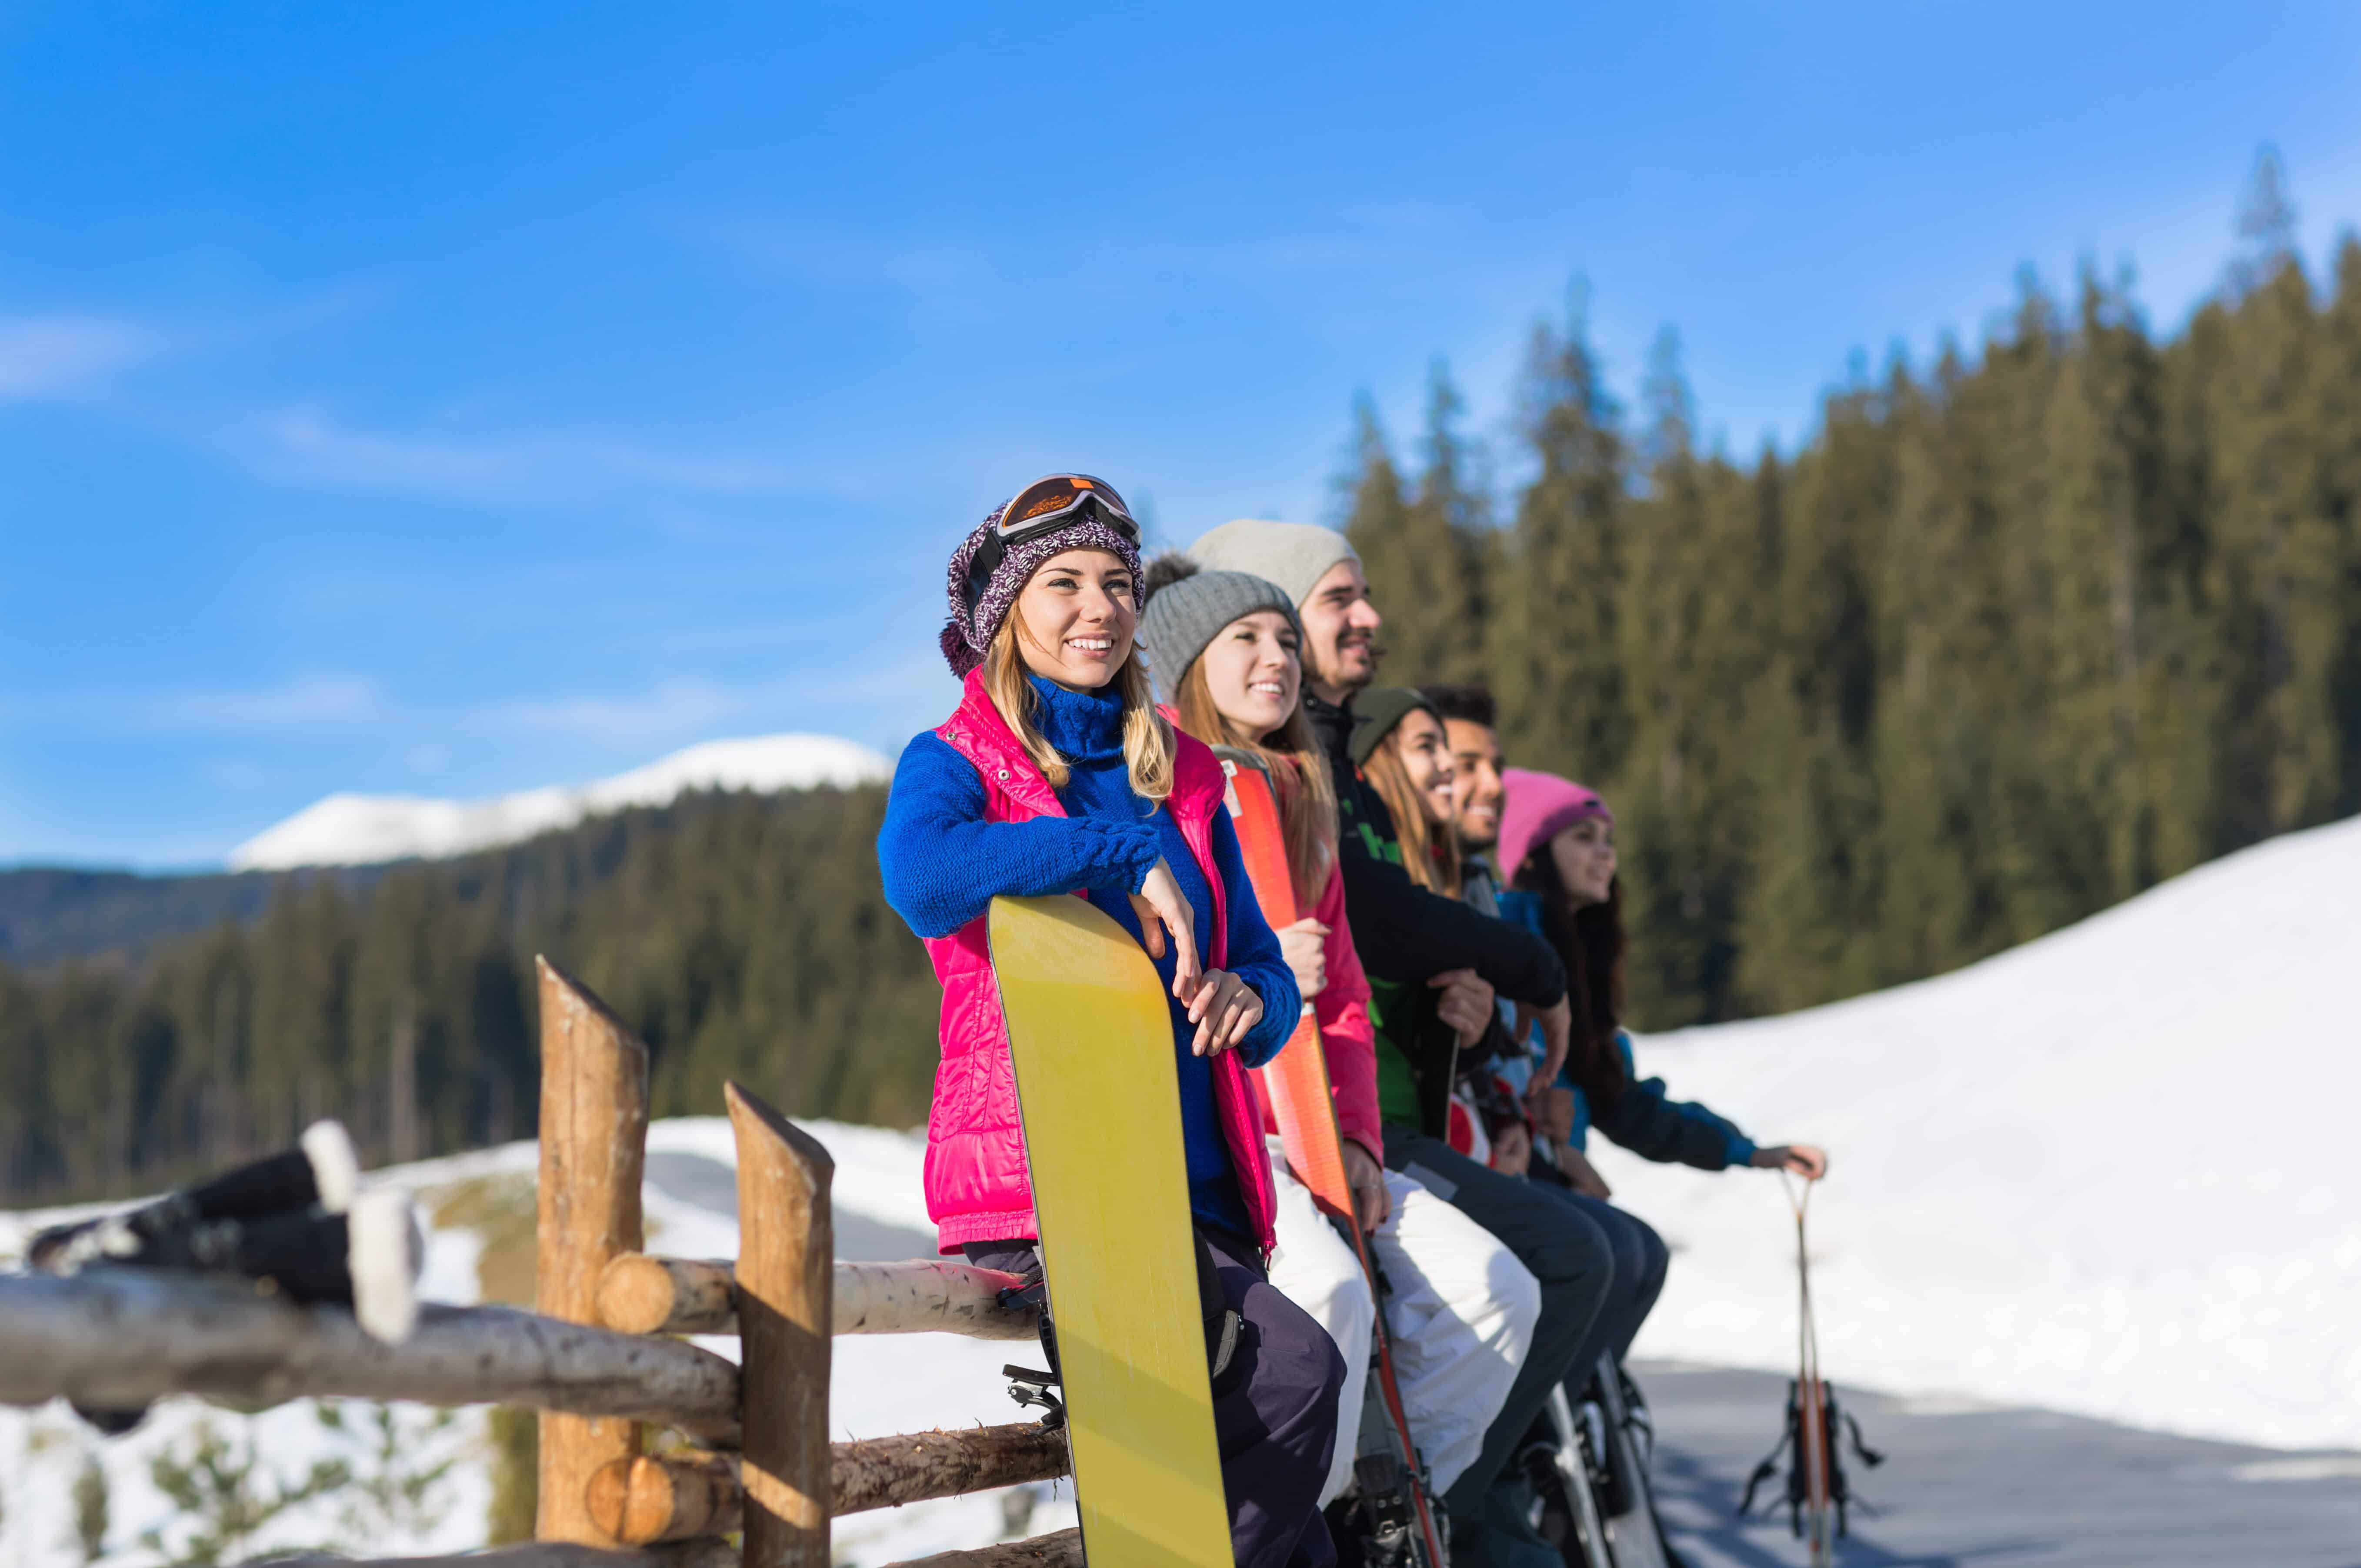 The Ultimate Snowboard Trip Packing List: Ski and Snowboarding Essentials